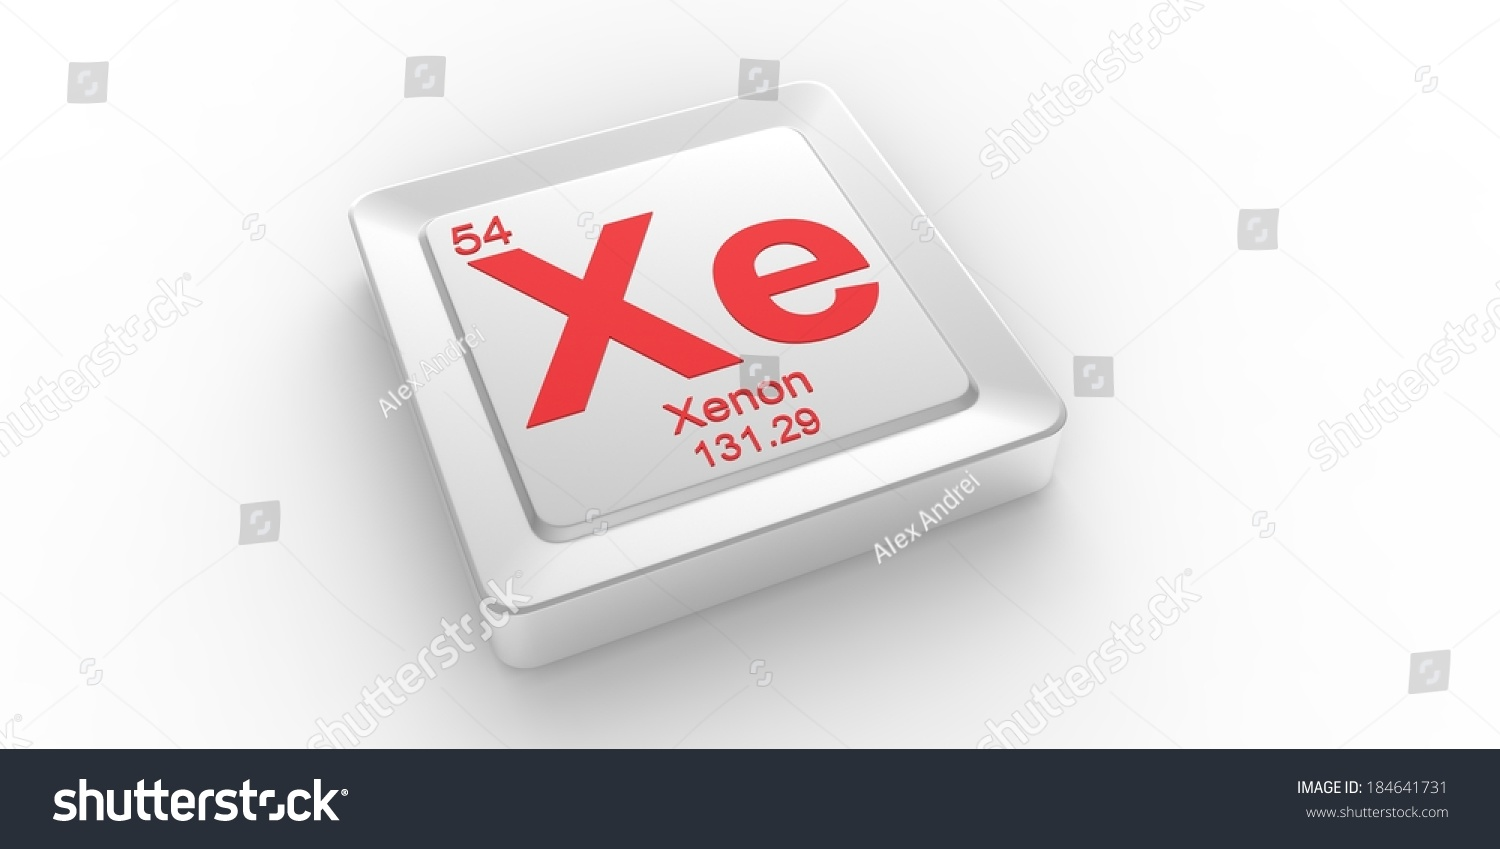 Xe symbol 54 material xenon chemical stock illustration 184641731 xe symbol 54 material for xenon chemical element of the periodic table gamestrikefo Choice Image